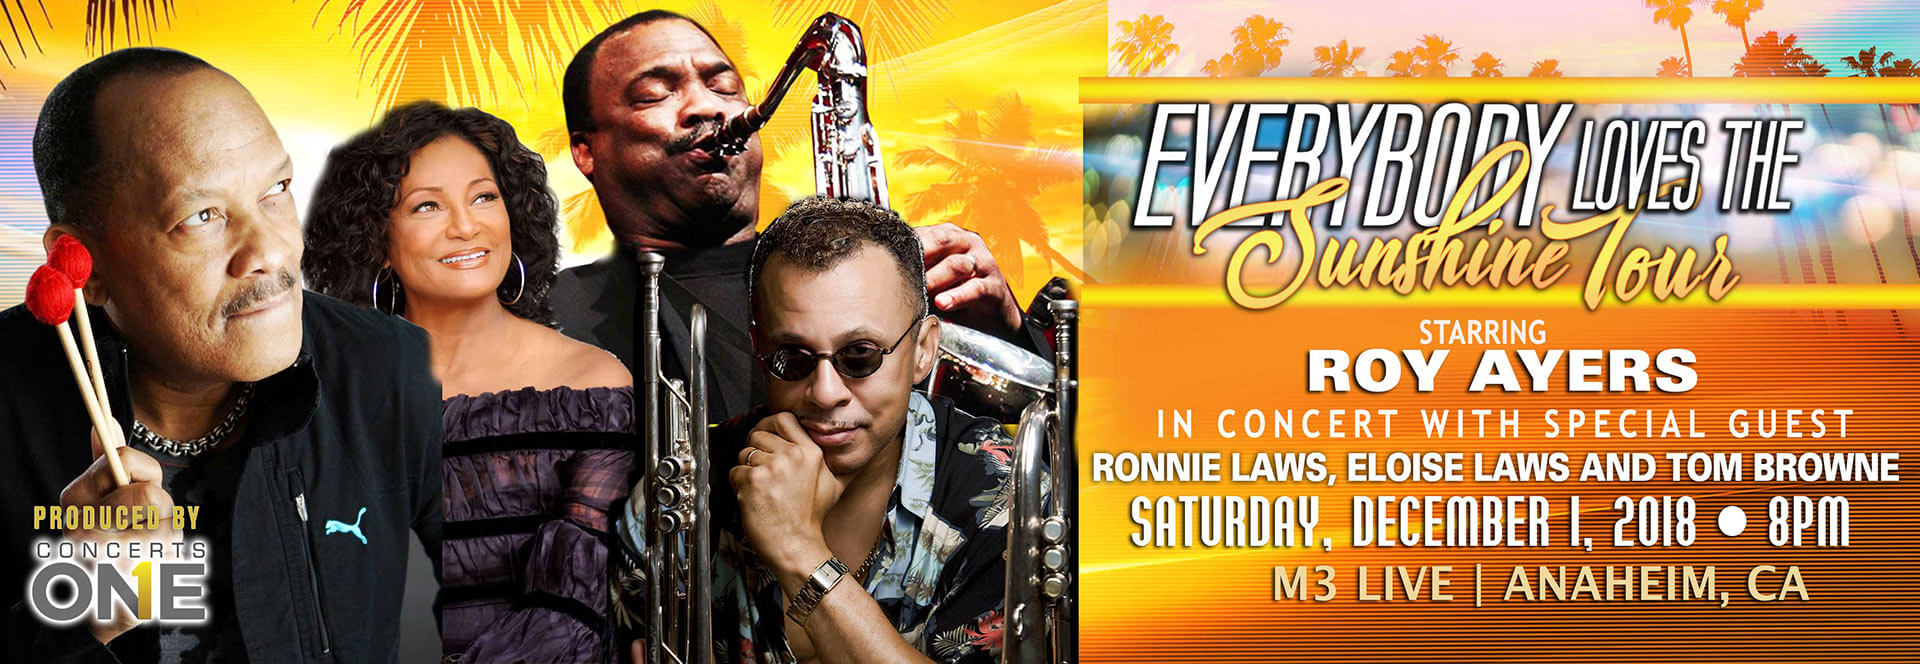 Everybody Loves the Sunshine Concert Tour Starring Roy Ayers, Ronnie Laws.